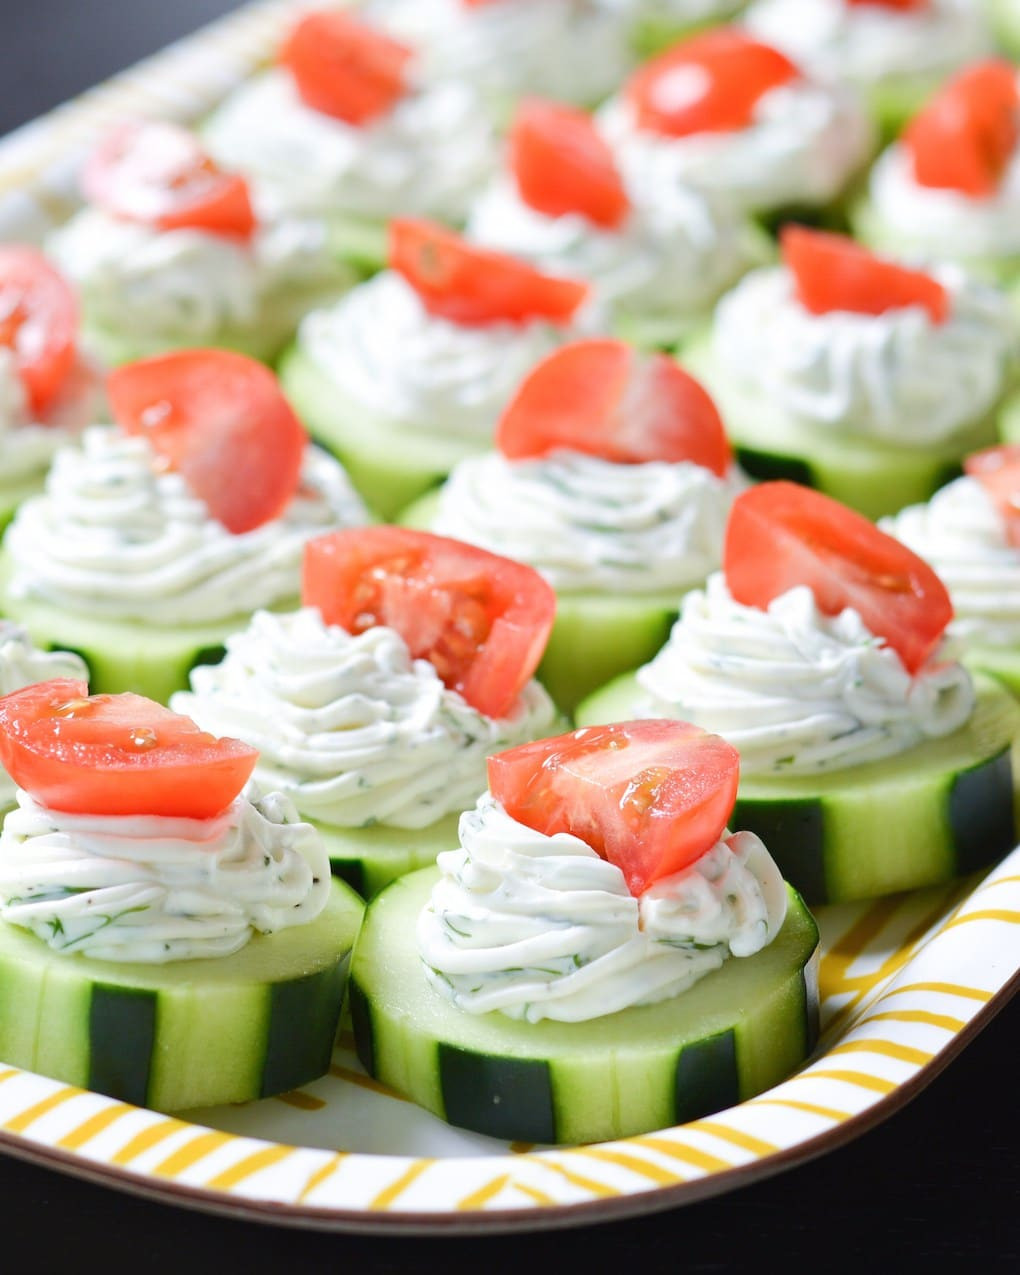 Healthy Appetizers For Kids  18 Skinny Appetizers For Your Holiday Parties